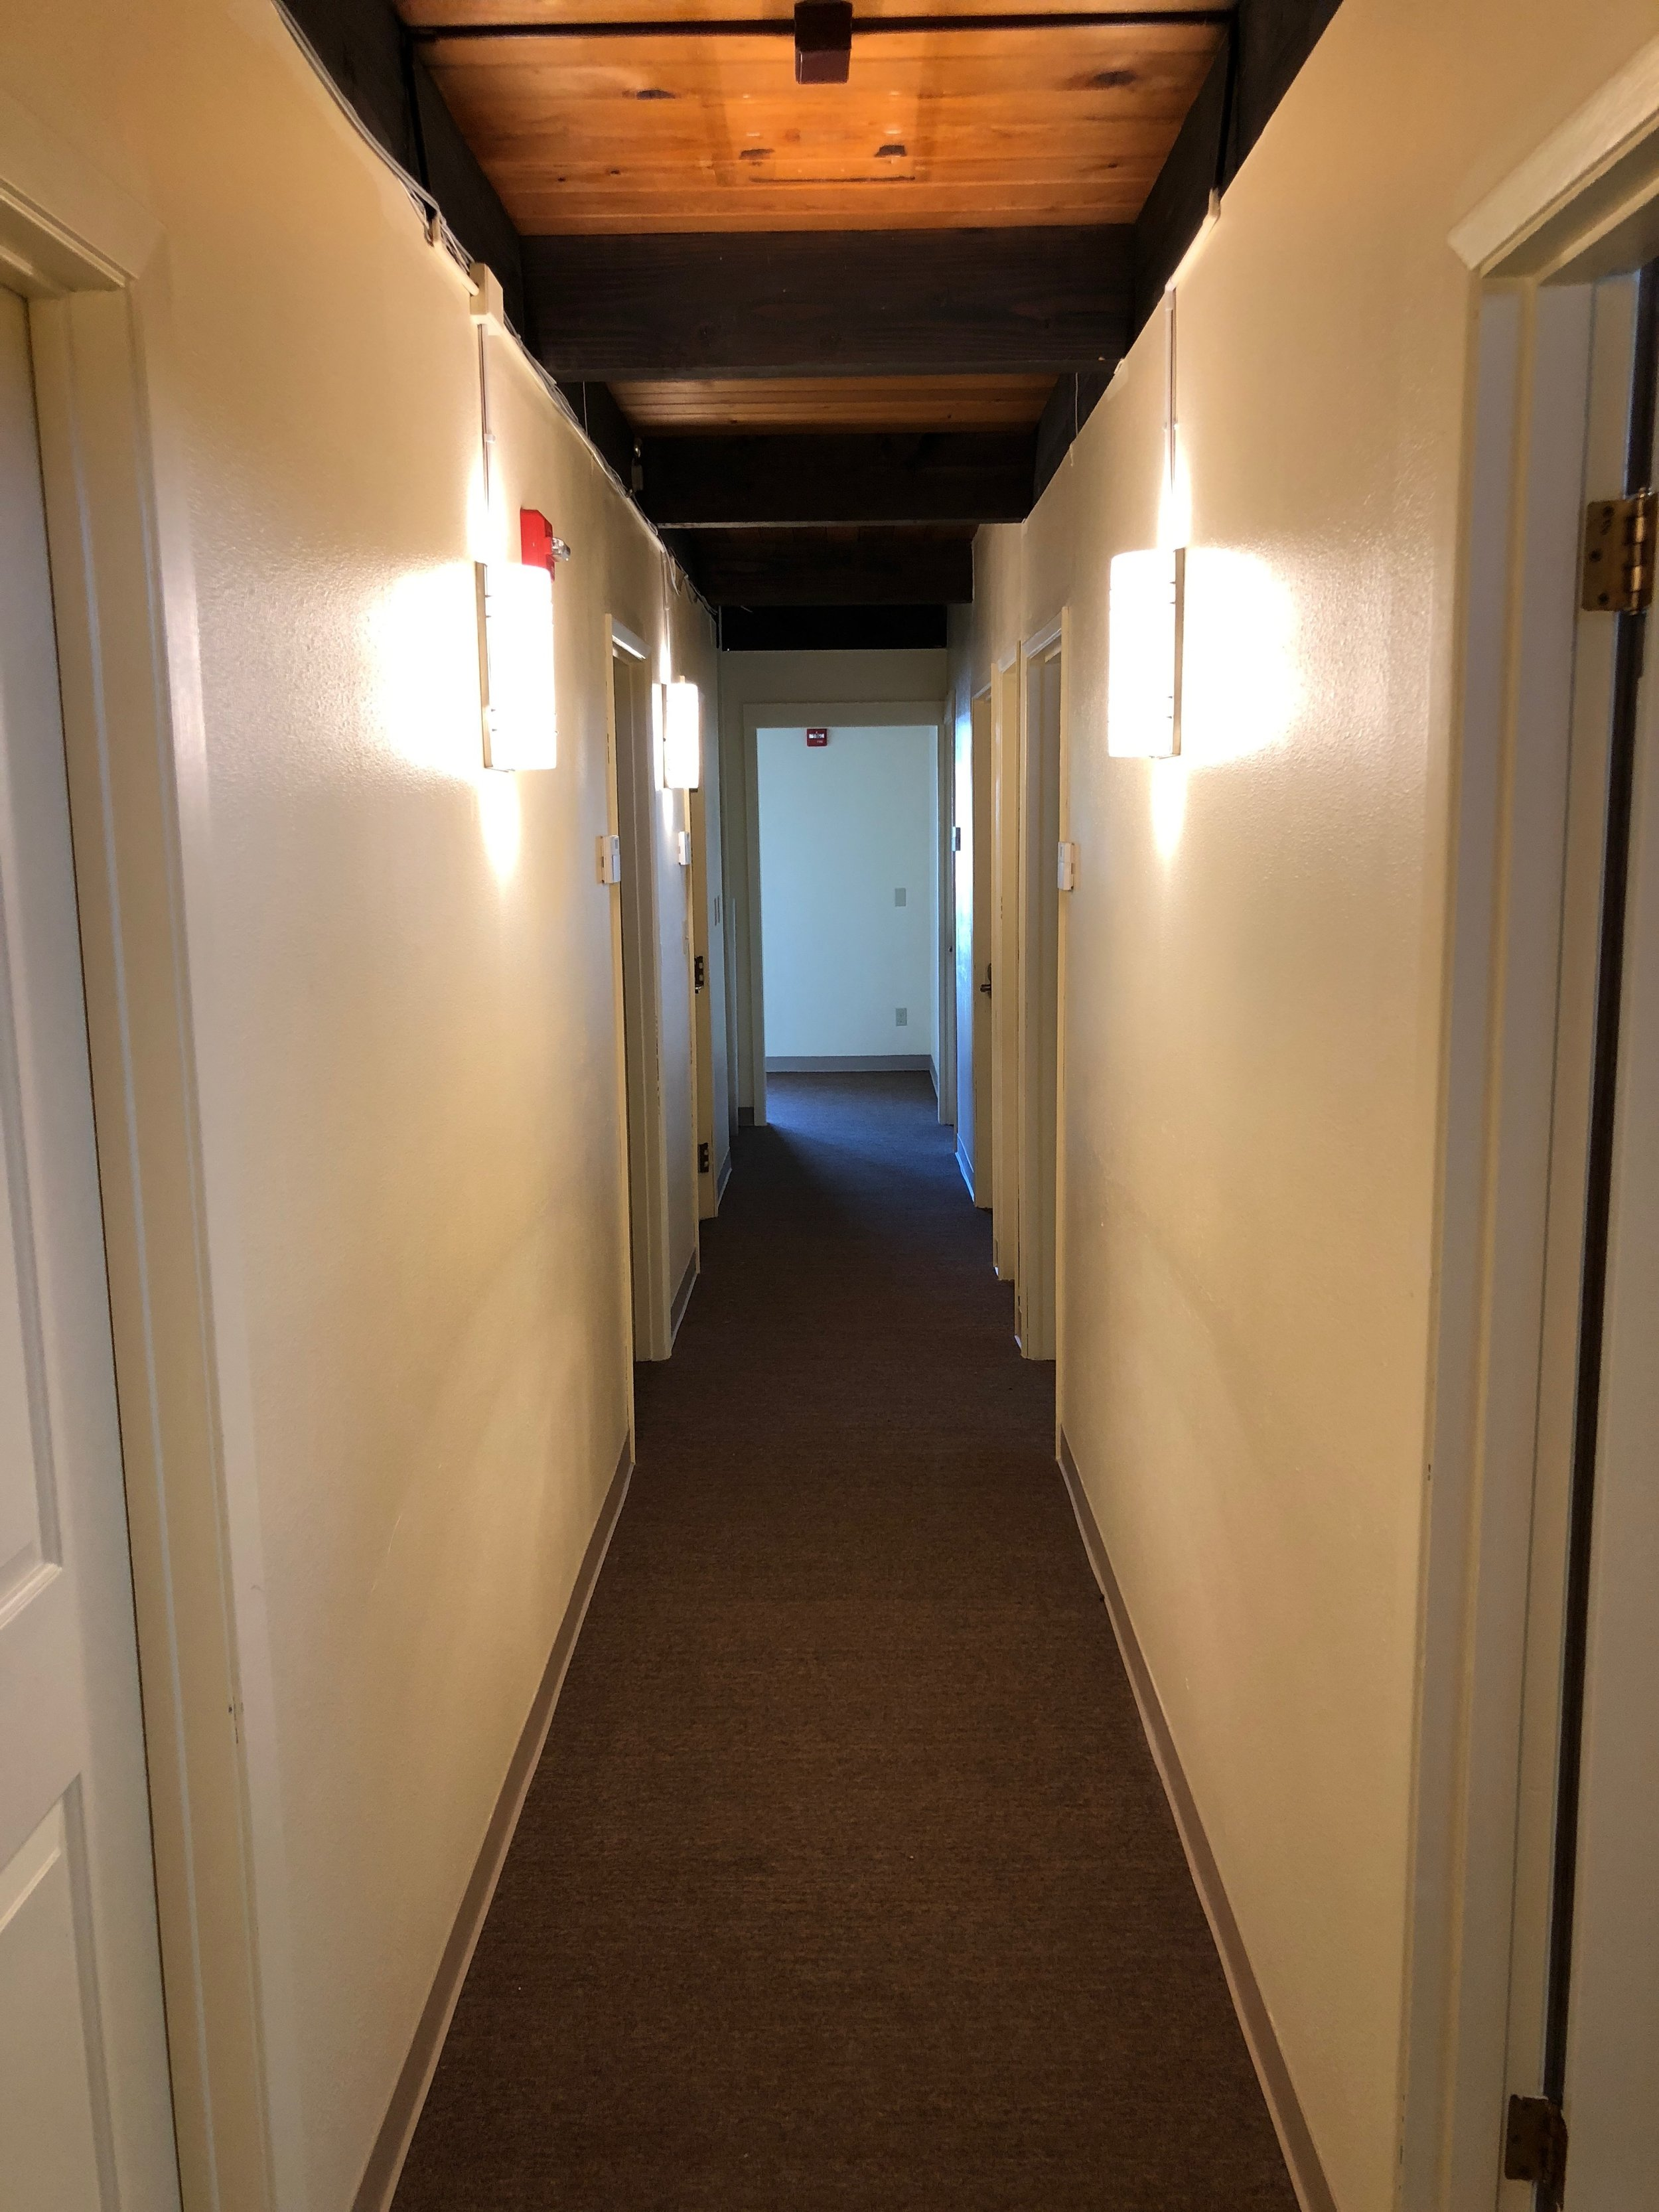 Clean & Private - We provide clean and private storage rooms.